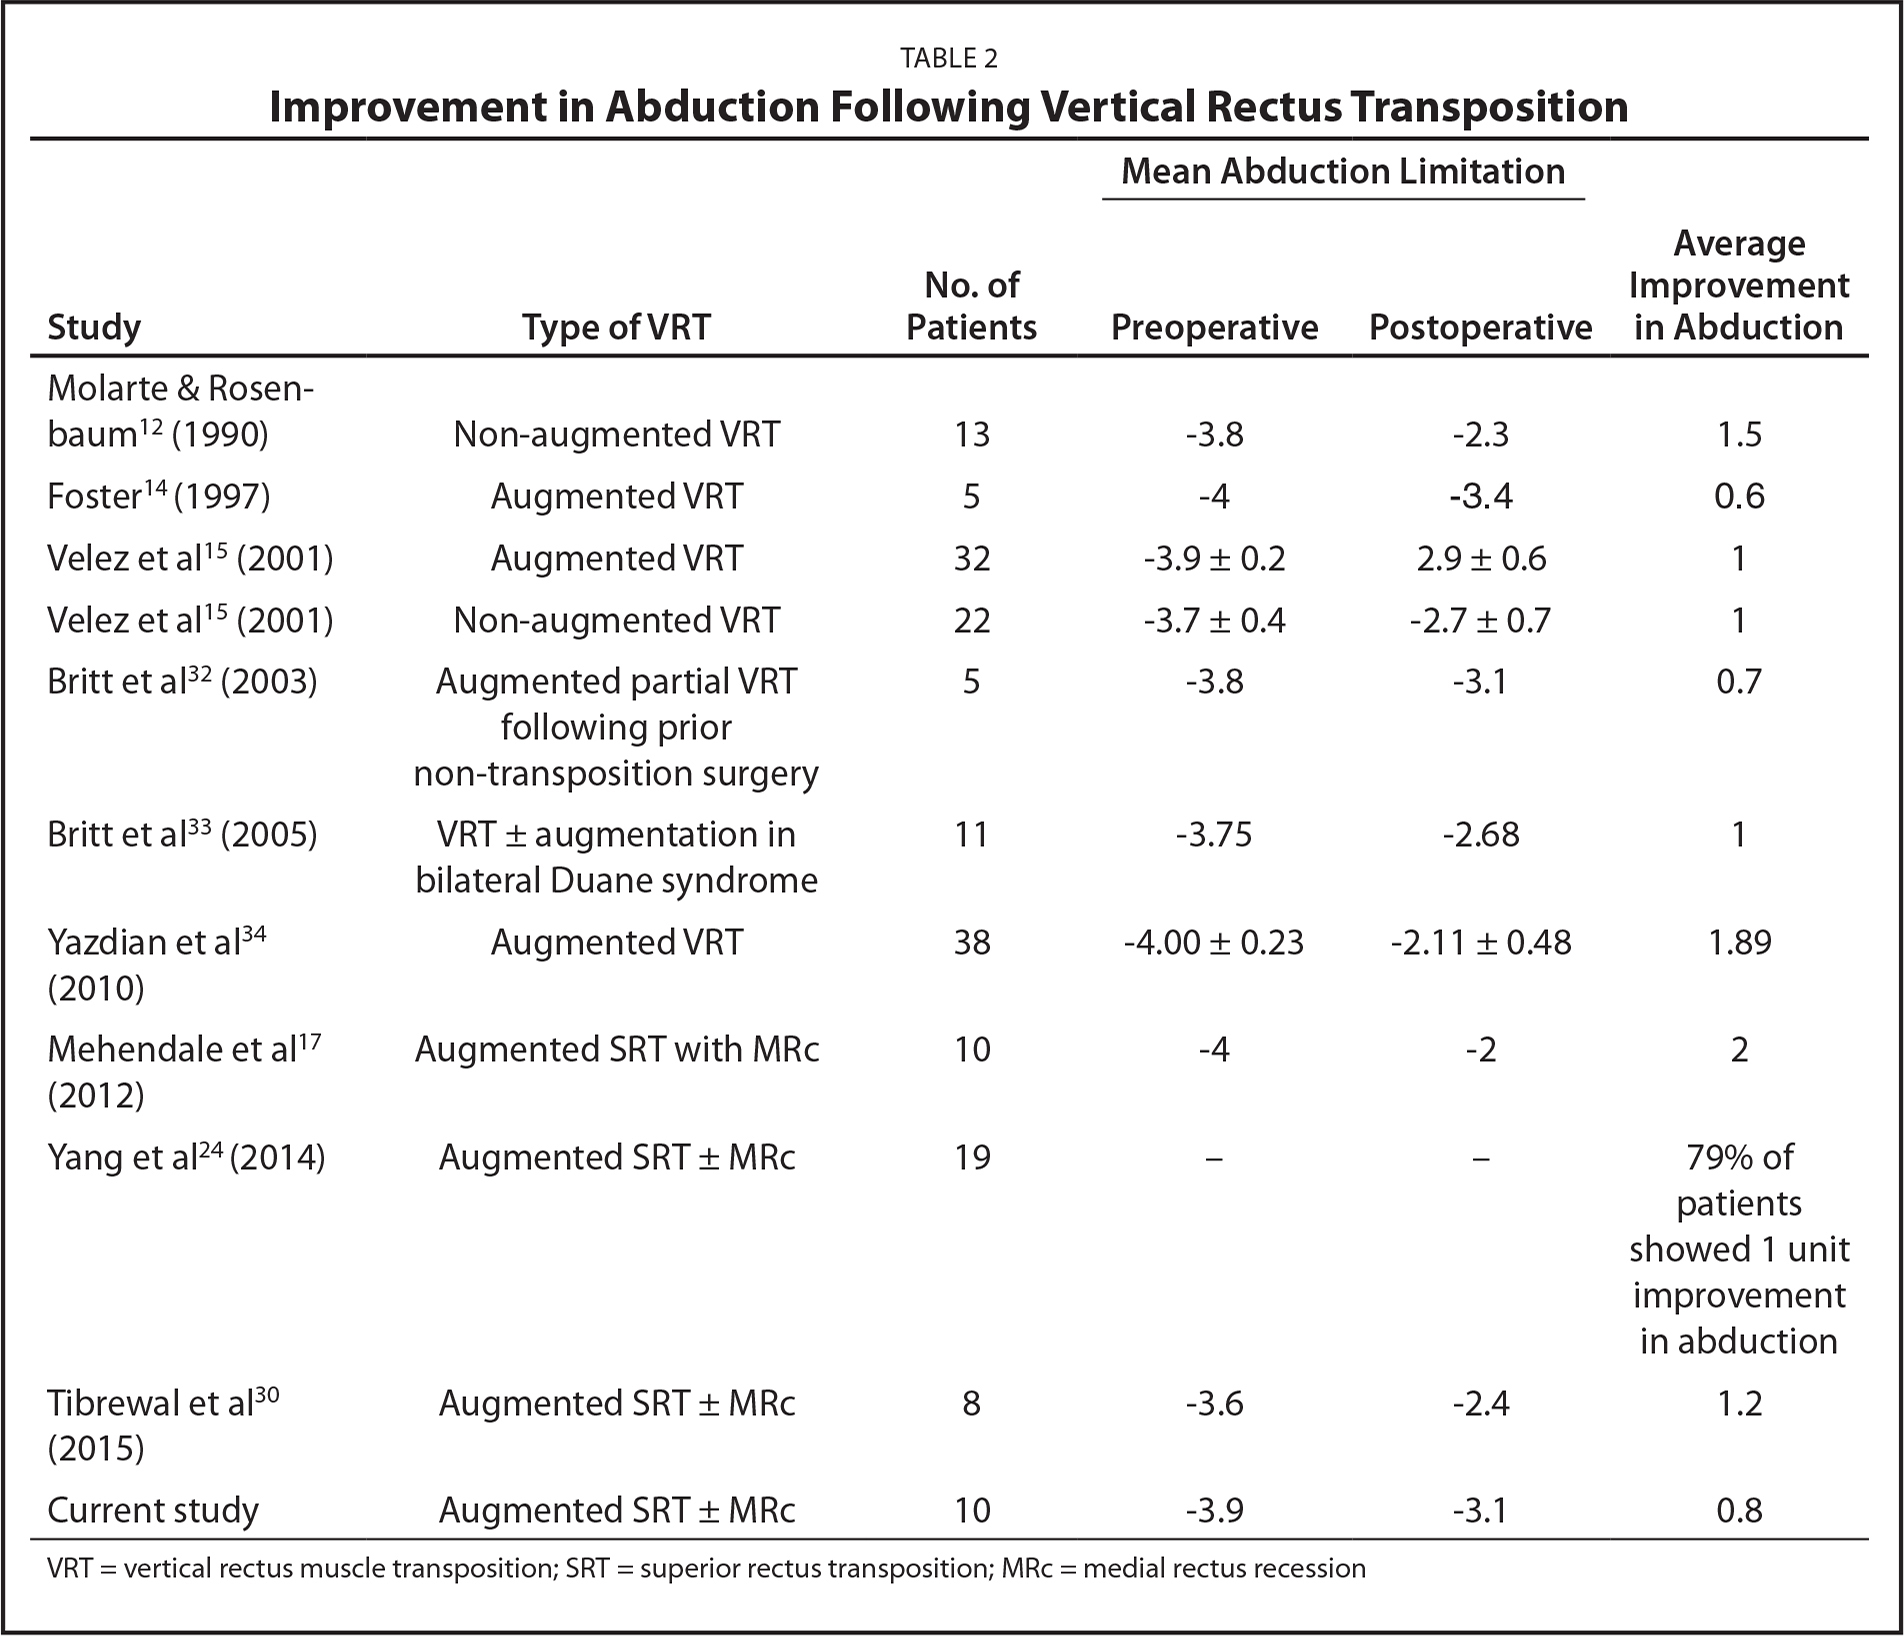 Improvement in Abduction Following Vertical Rectus Transposition